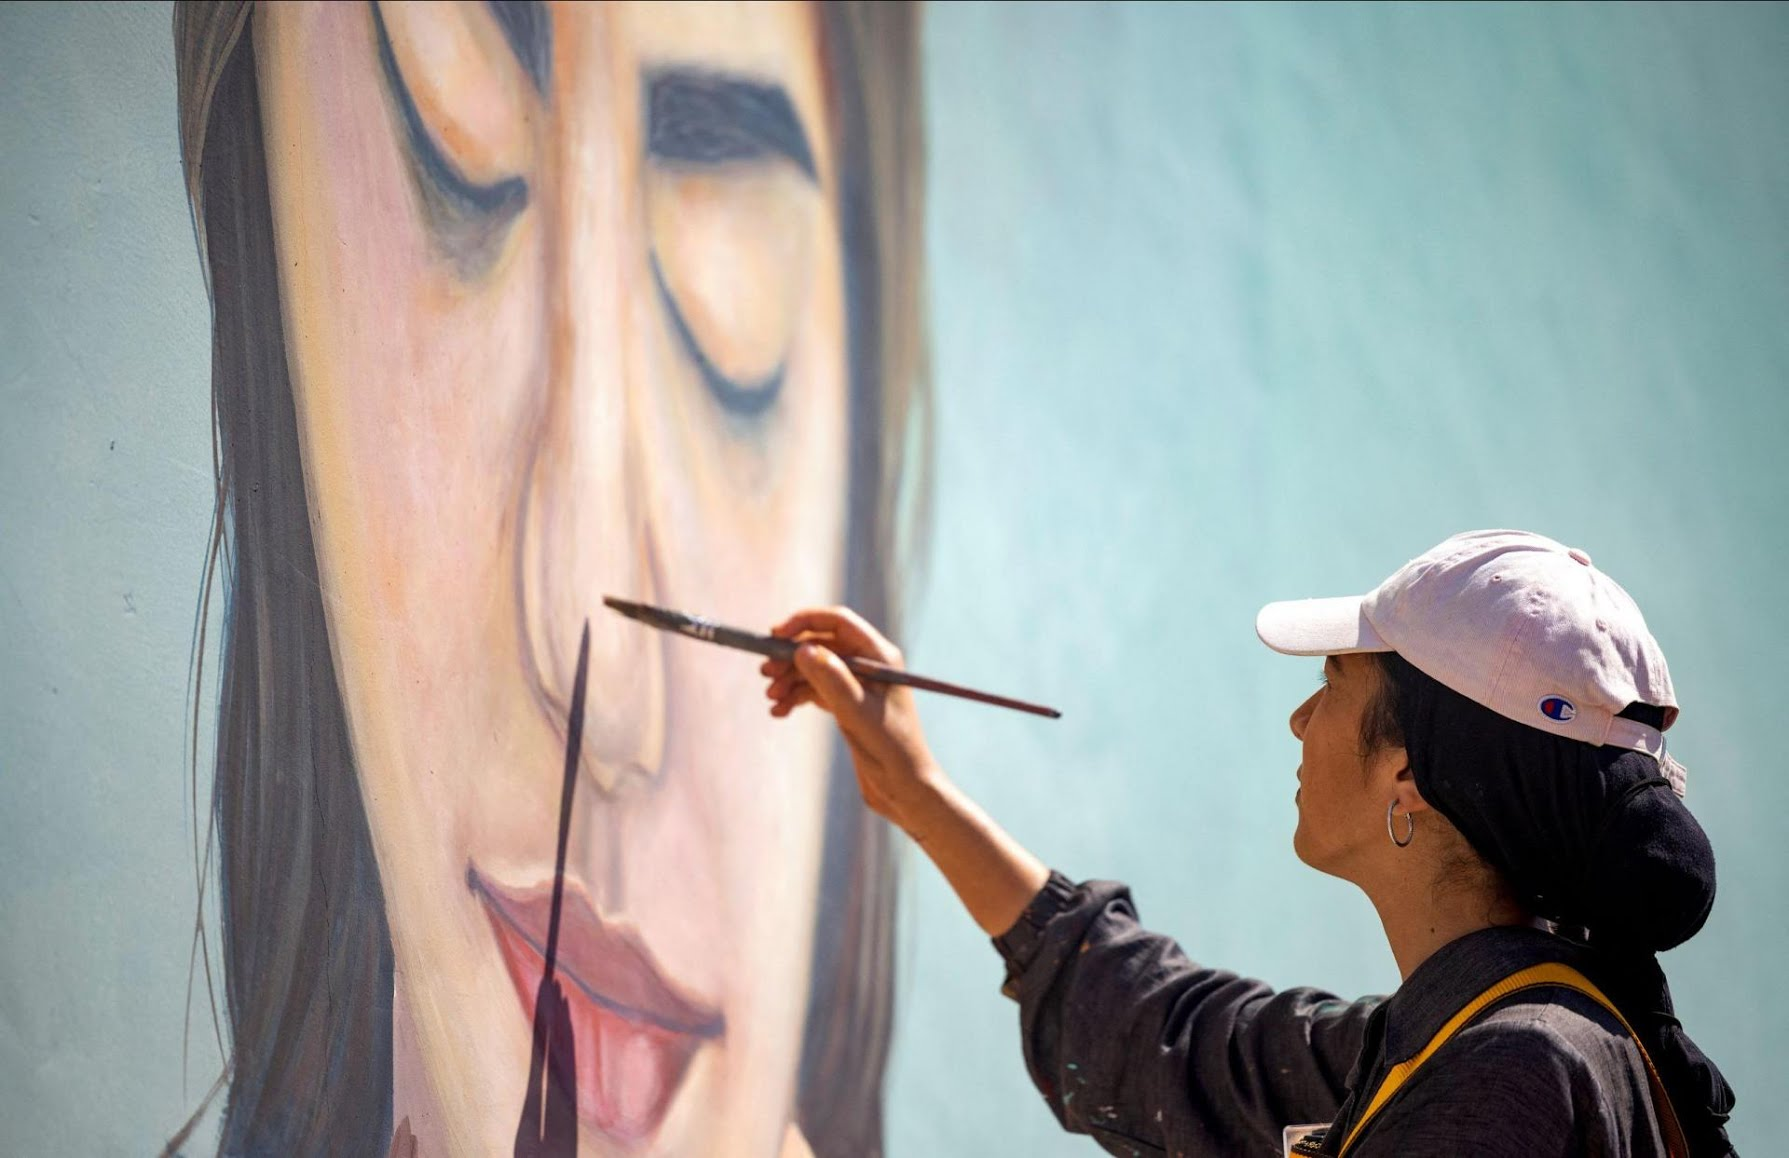 Moroccan street artist Imane Droby works on a mural during the 'Jidar' street art festival in the capital Rabat.